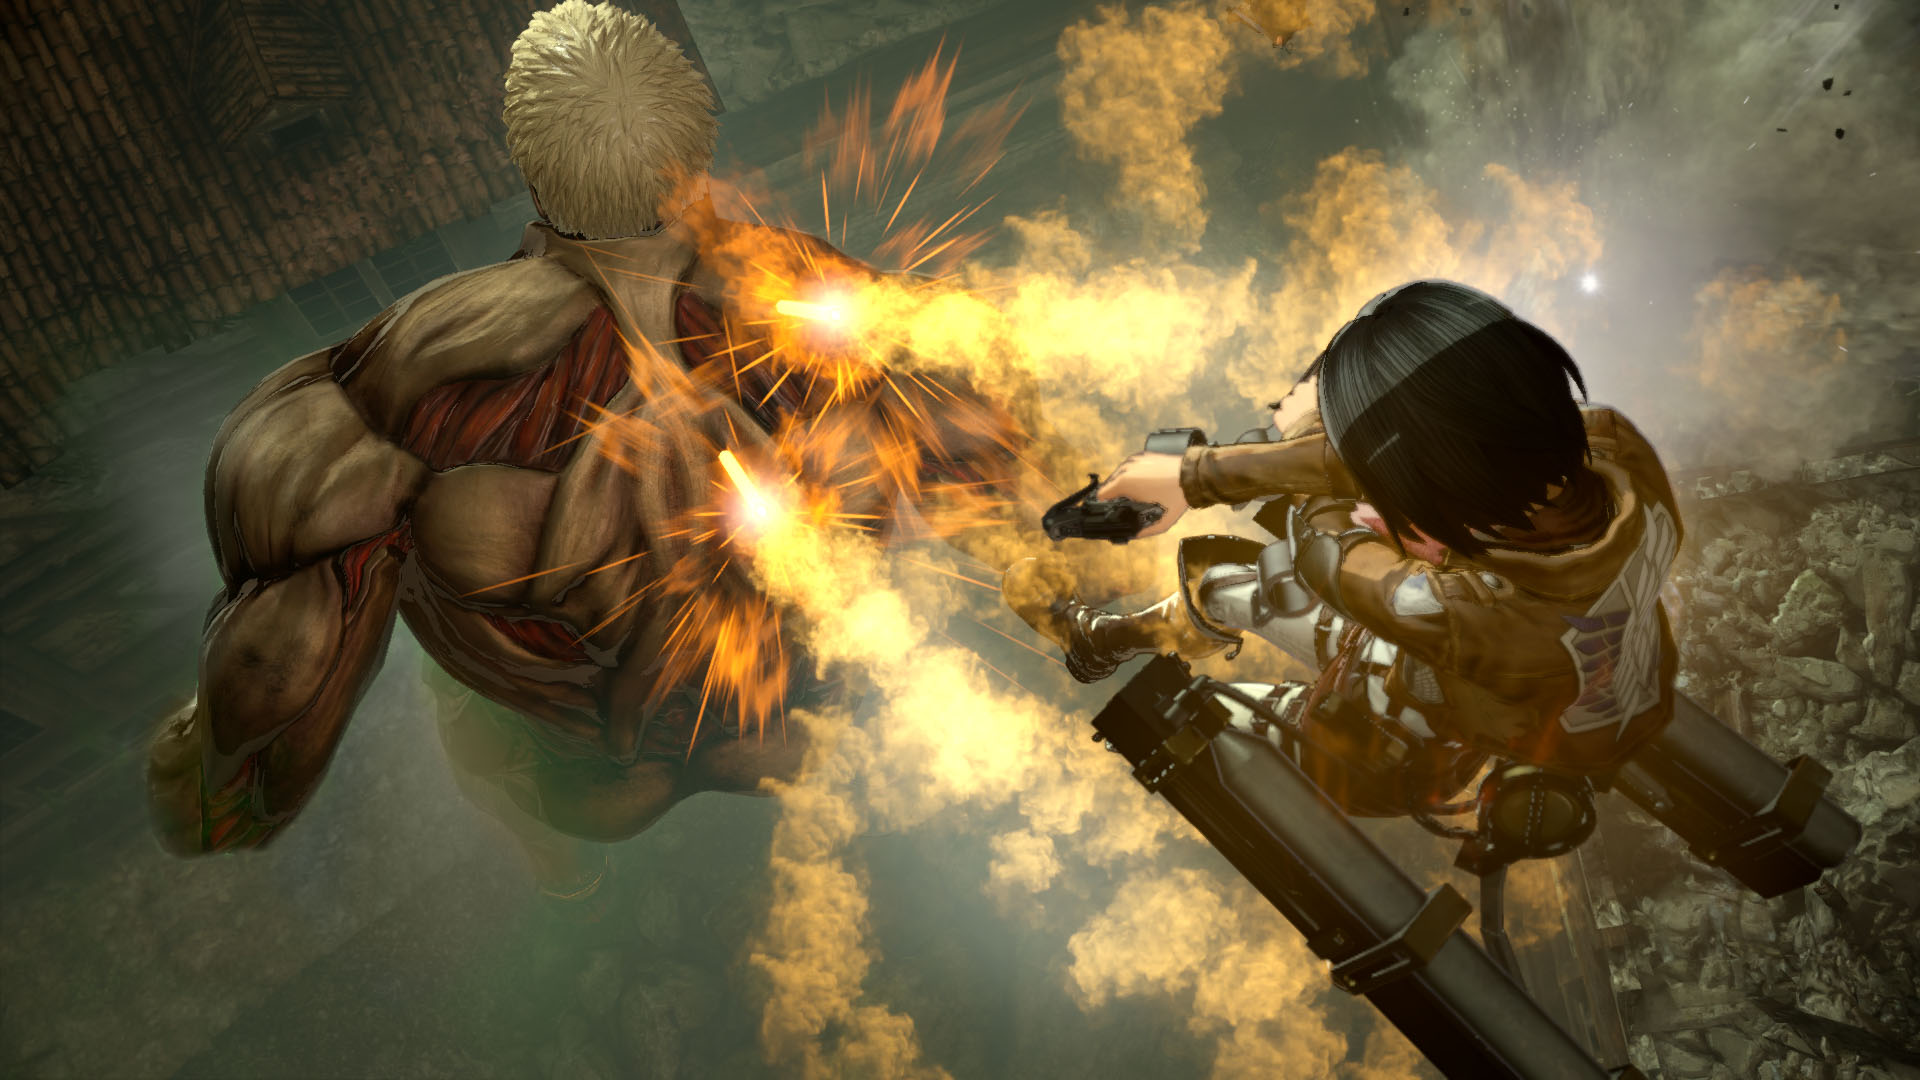 A.O.T. 2: Final Battle, A.O.T. 2: Final Battle Review, Action, anime, co-op, Gore, Koei Tecmo Games, nudity, Omega Force, PS4, PS4 Review, Violent